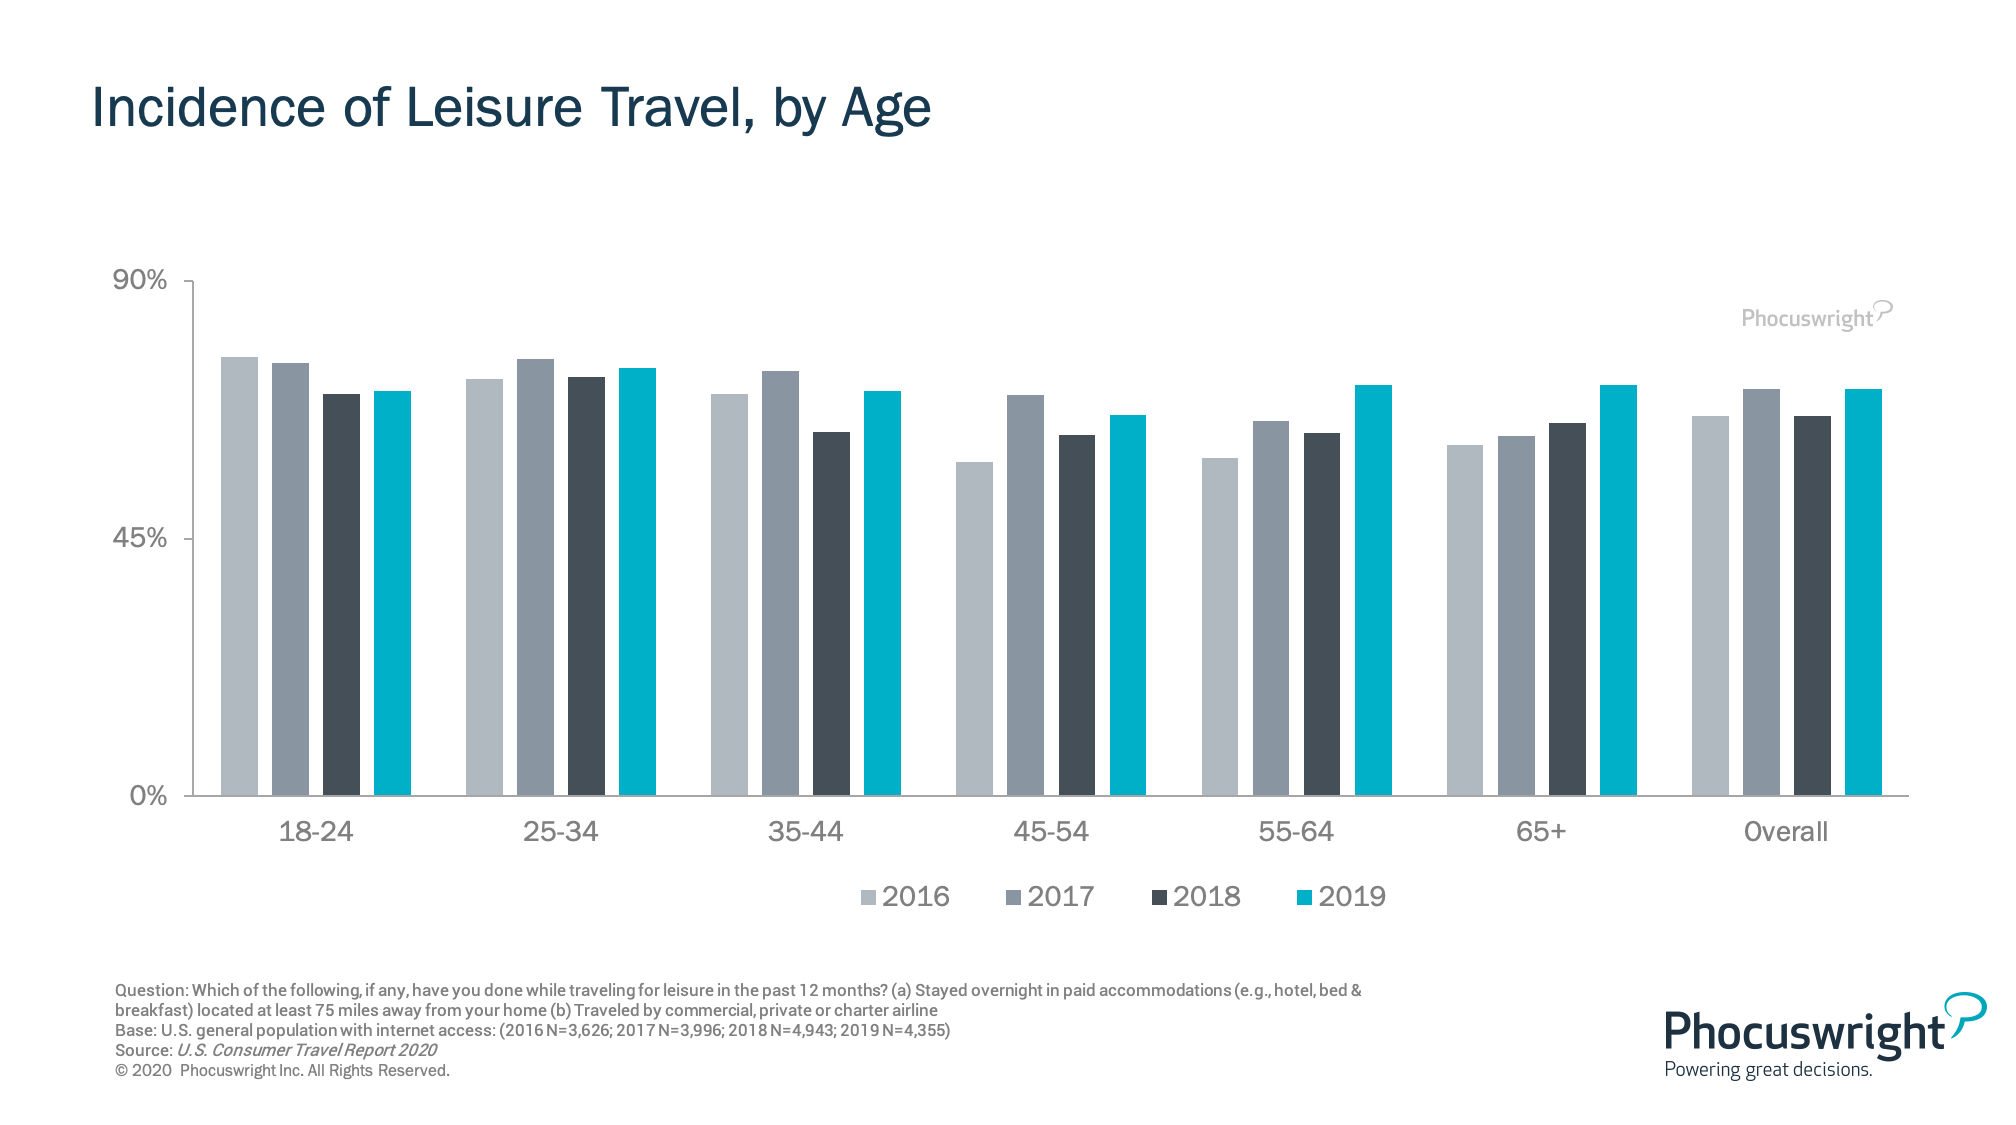 Incidence of Leisure Travel, by Age Phocuswright